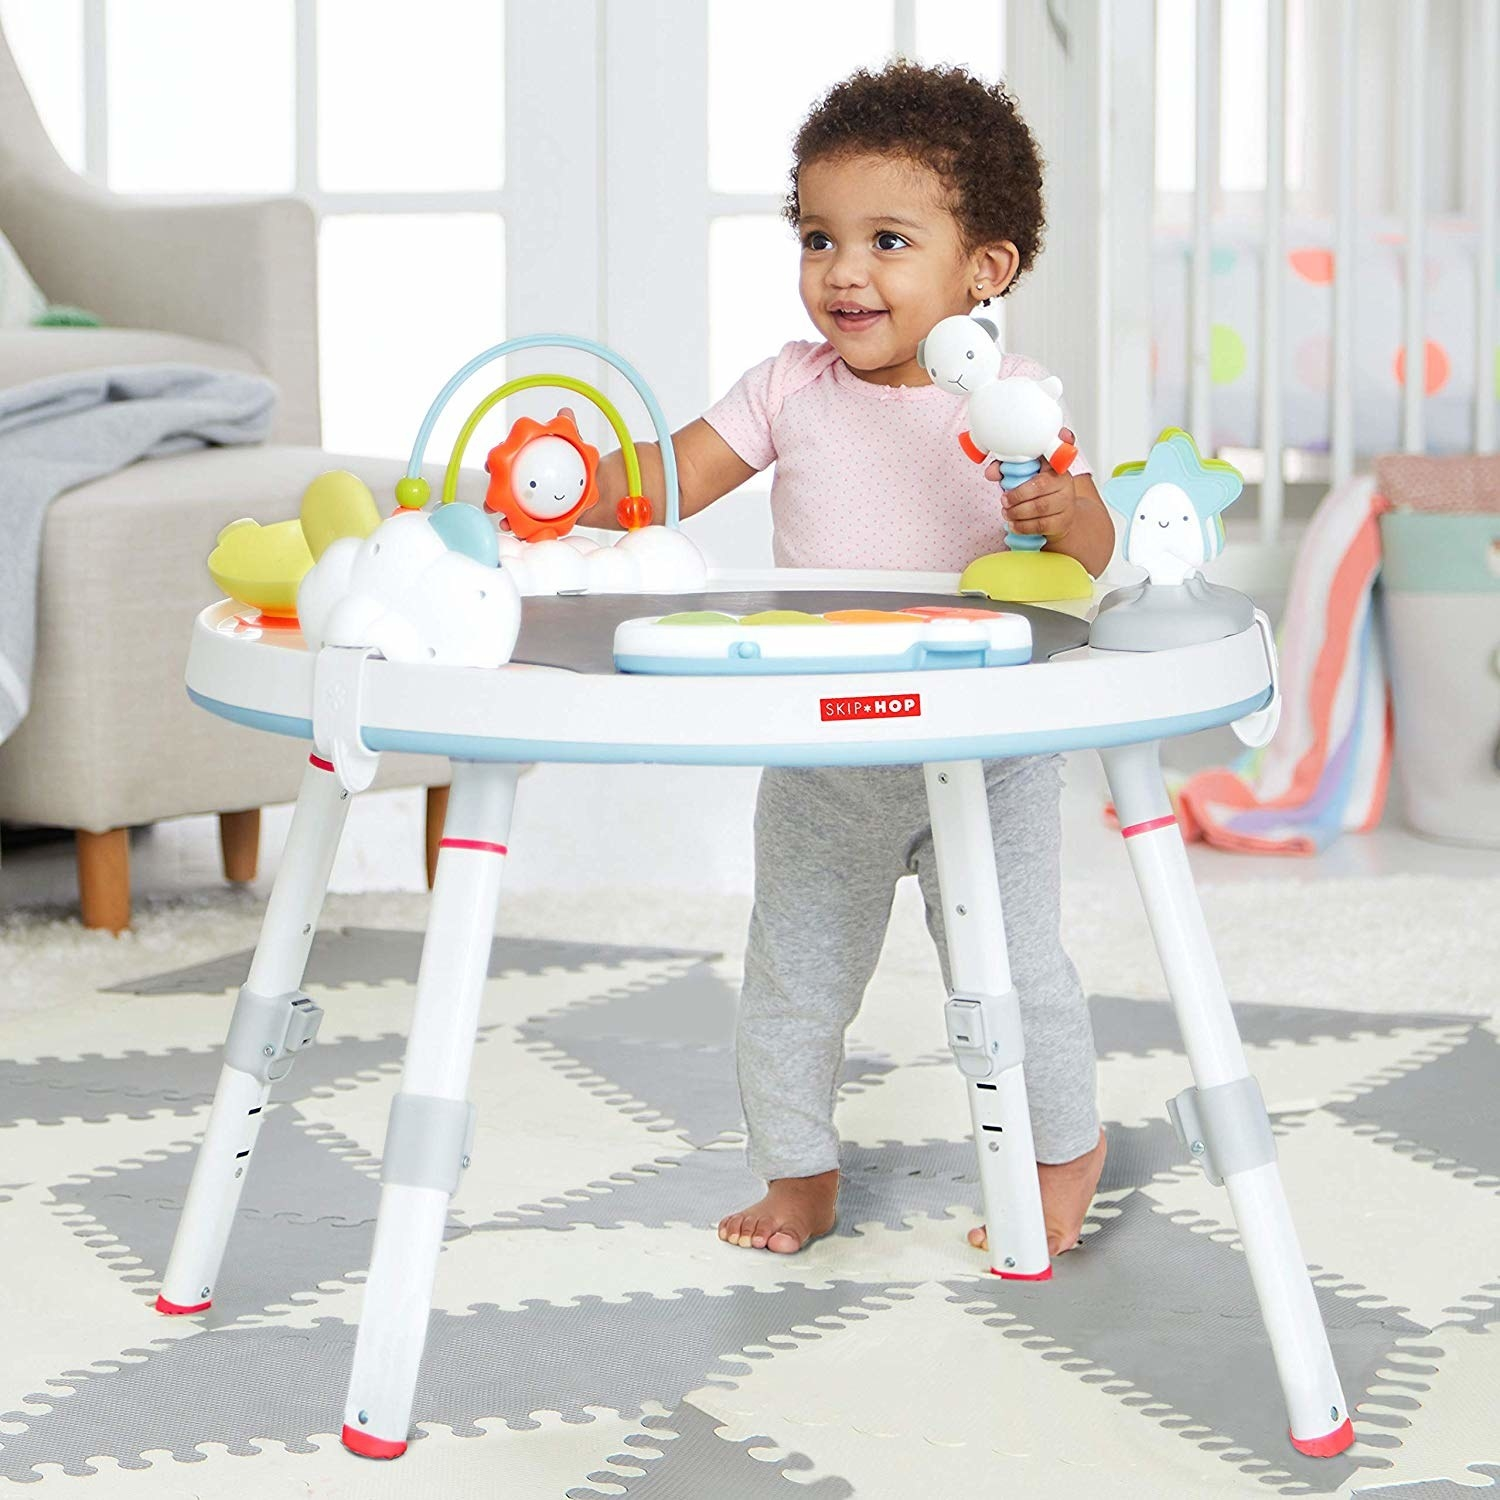 Child model standing next to white activity table with colorful toys attached